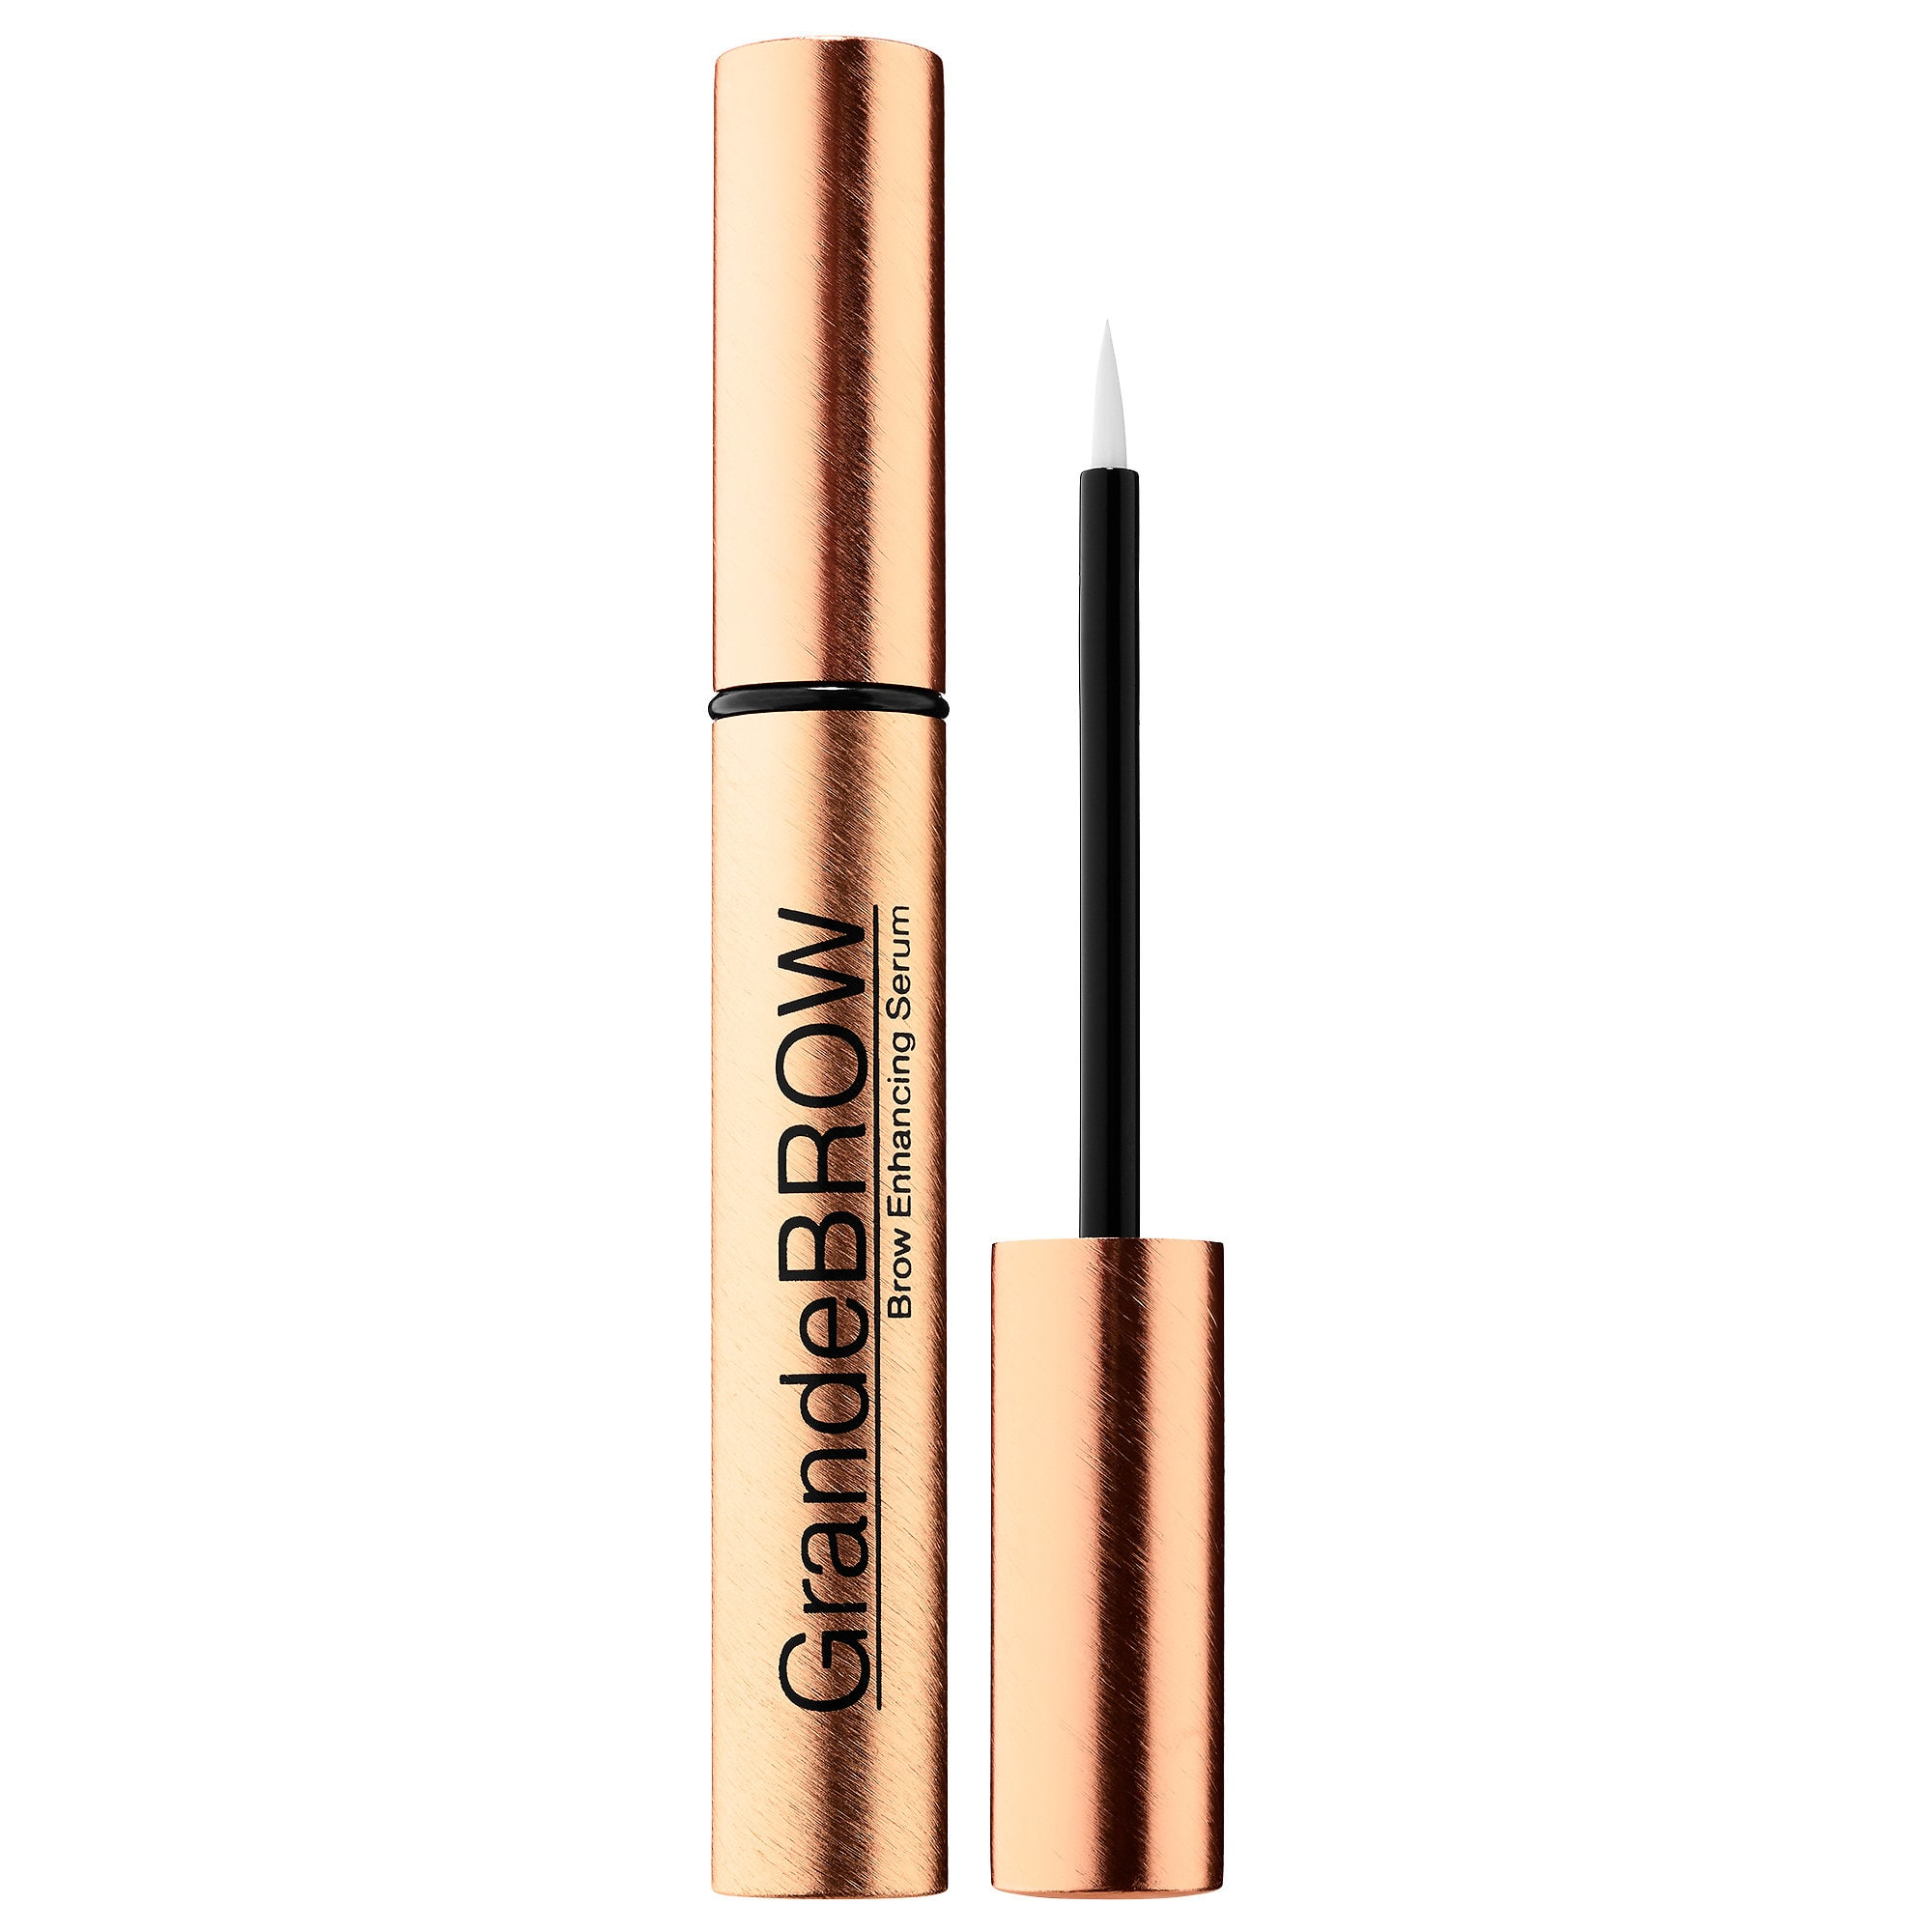 8 Eyebrow Regrowth Products, Tips and Treatments